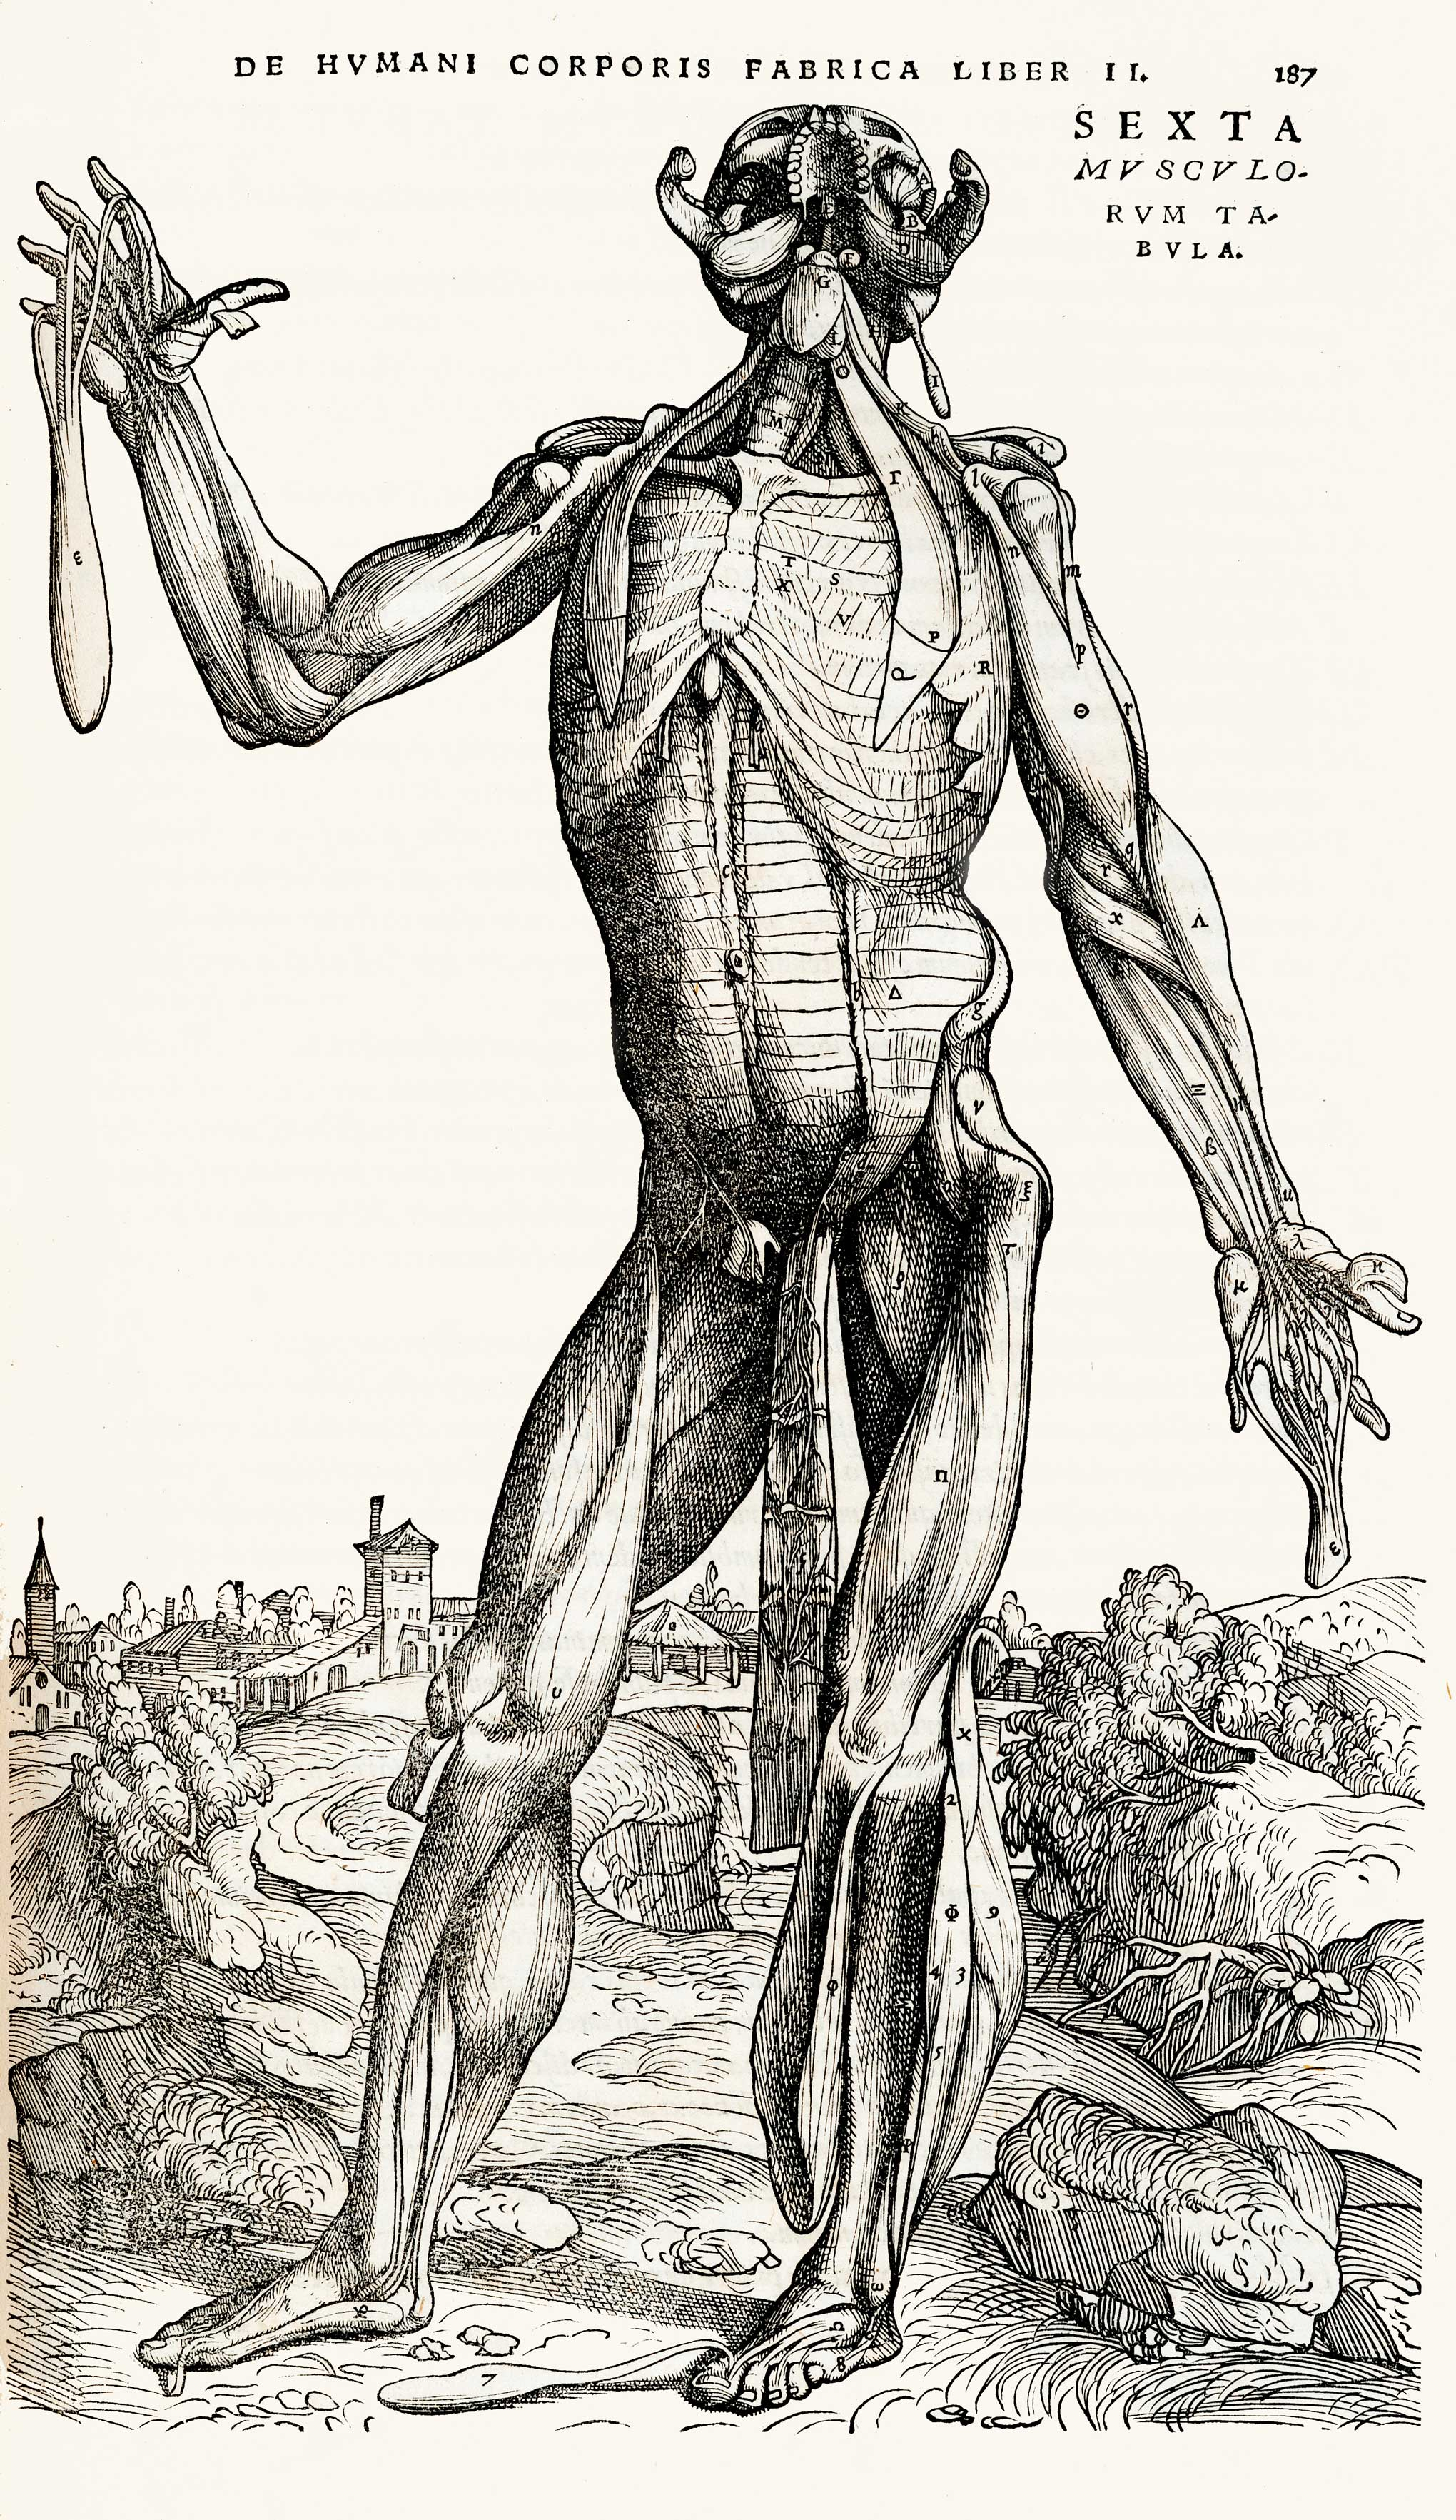 These Old Anatomical Drawings Are Worth Dissecting 1843